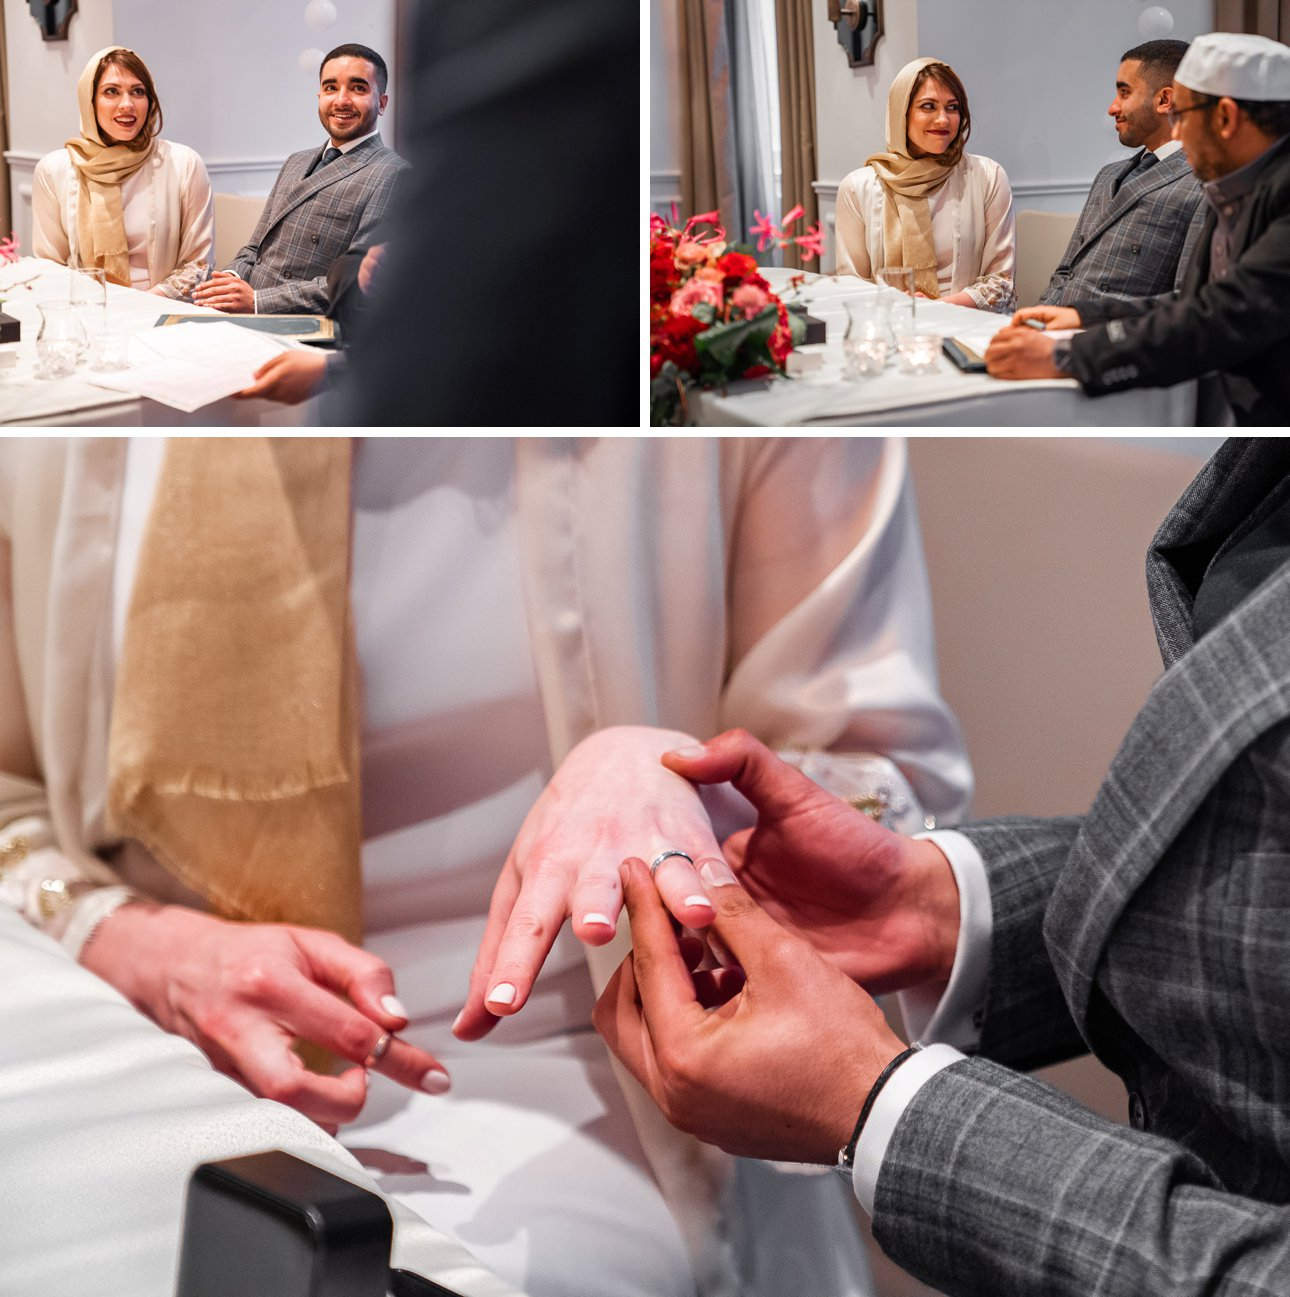 Muslim wedding ceremony with exchange of rings.